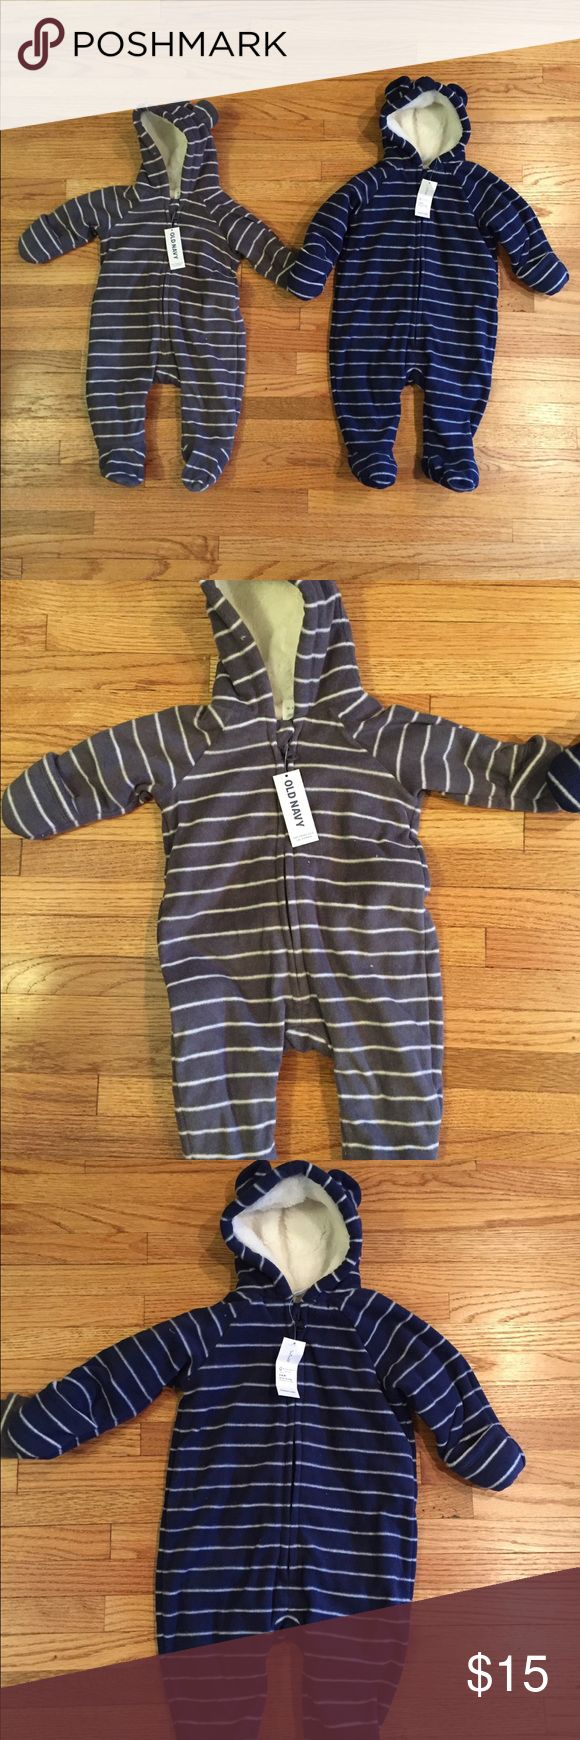 Old Navy fleece bunting suits NWT Two baby buntings in microfleece to keep your little one warm! Blue is size 3-6 months, gray is 0-3 months. $15 each or make me an offer for both. Old Navy Jackets & Coats